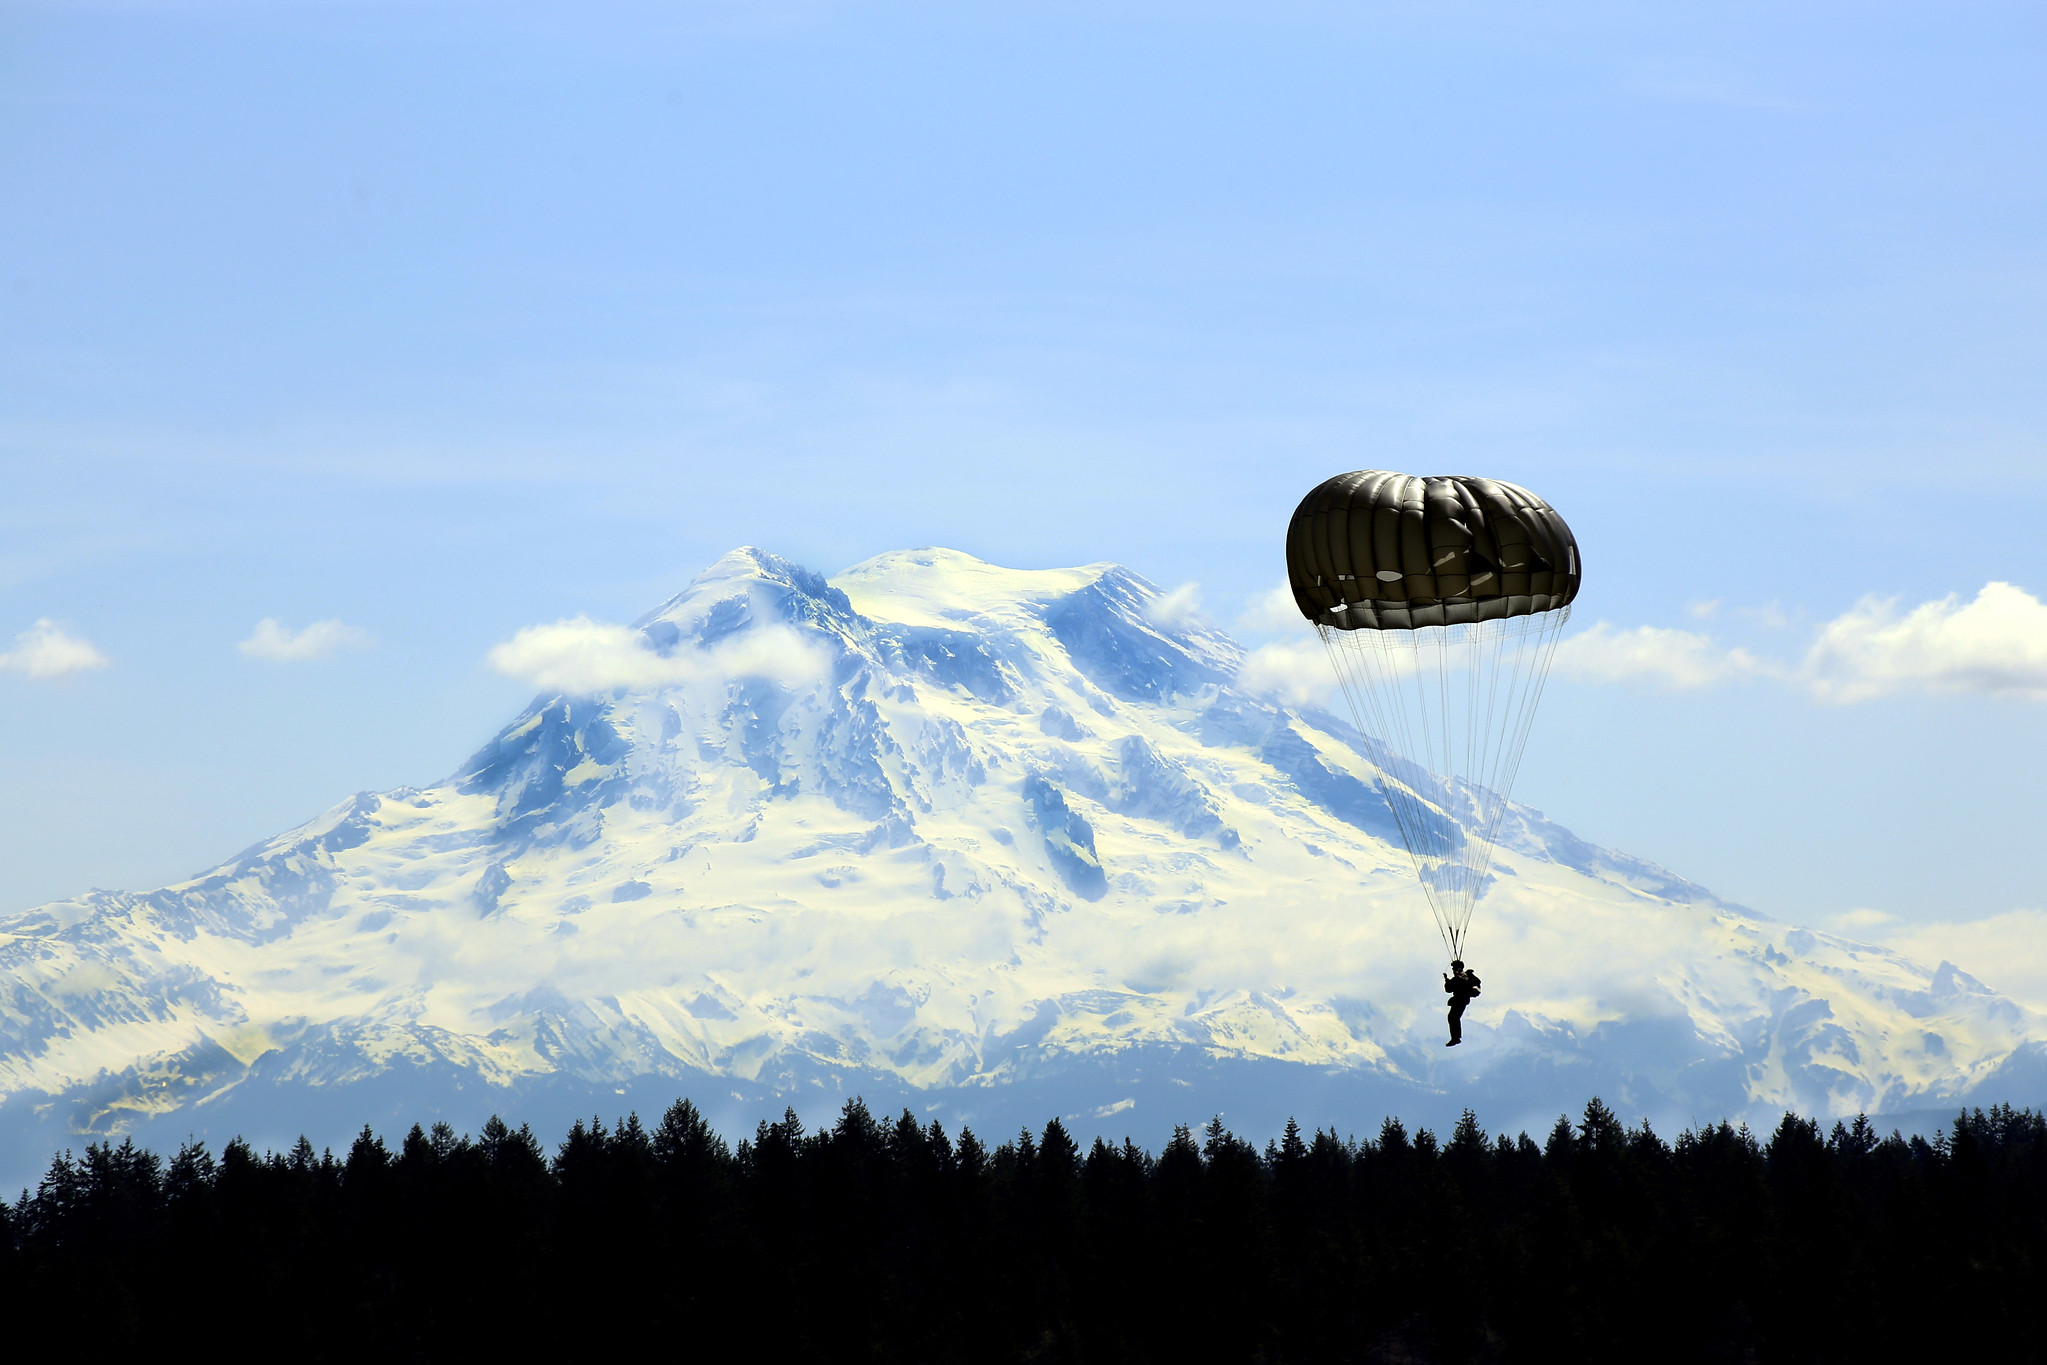 A Guardsman with Alpha Company, 1st Battalion, 19th Special Forces Group parachute past Mount Rainier on Joint Base Lewis-McChord on May 5, 2019. (Joseph Siemandel/National Guard)